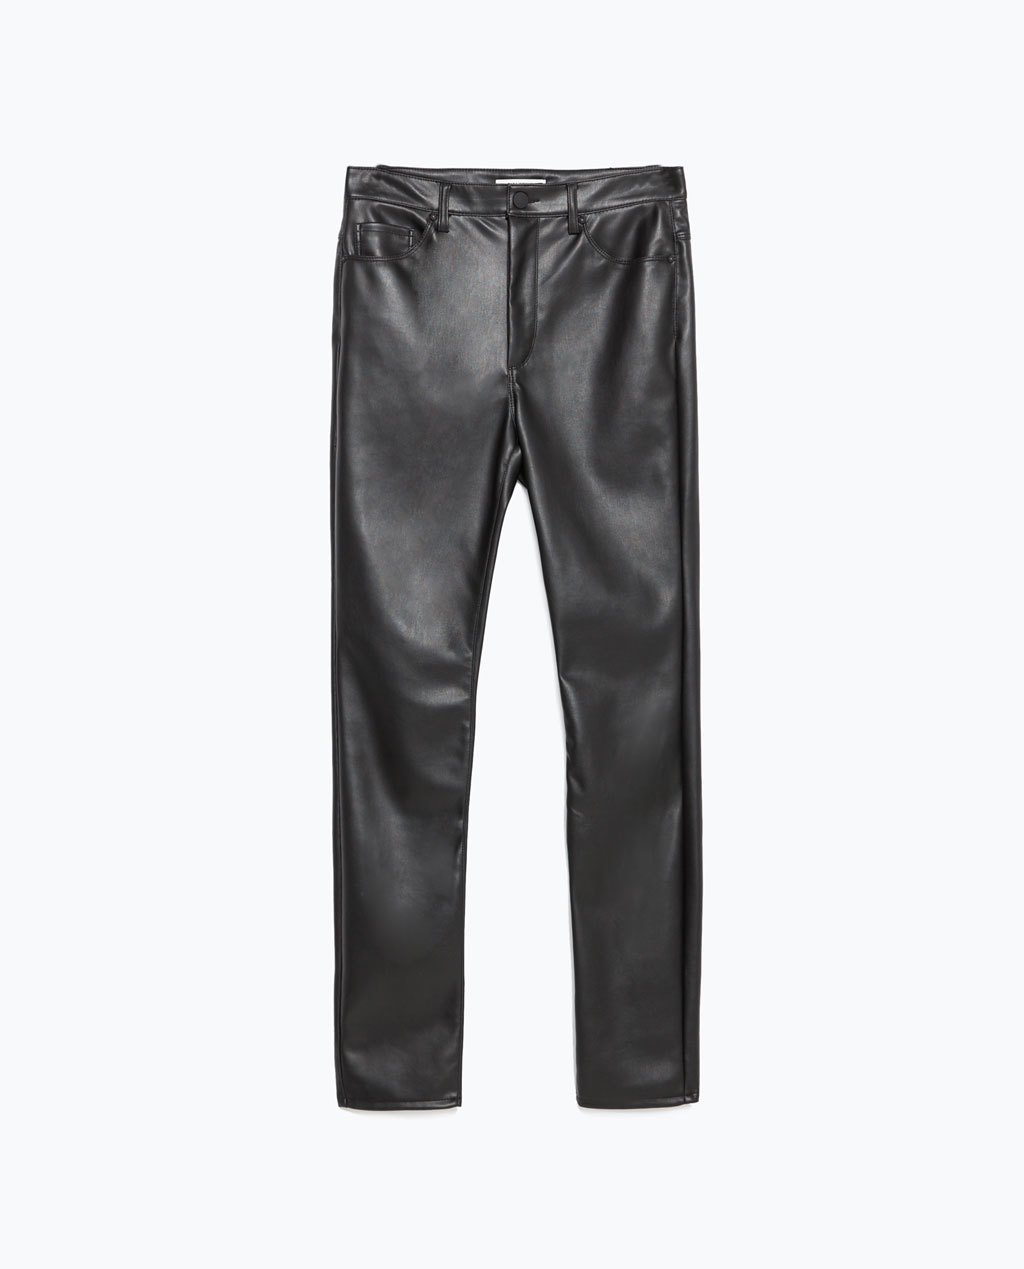 Skinny Trousers - length: standard; pattern: plain; waist: high rise; pocket detail: traditional 5 pocket; predominant colour: black; occasions: casual, evening, creative work; fibres: polyester/polyamide - 100%; texture group: leather; fit: skinny/tight leg; pattern type: fabric; style: standard; season: a/w 2015; wardrobe: highlight